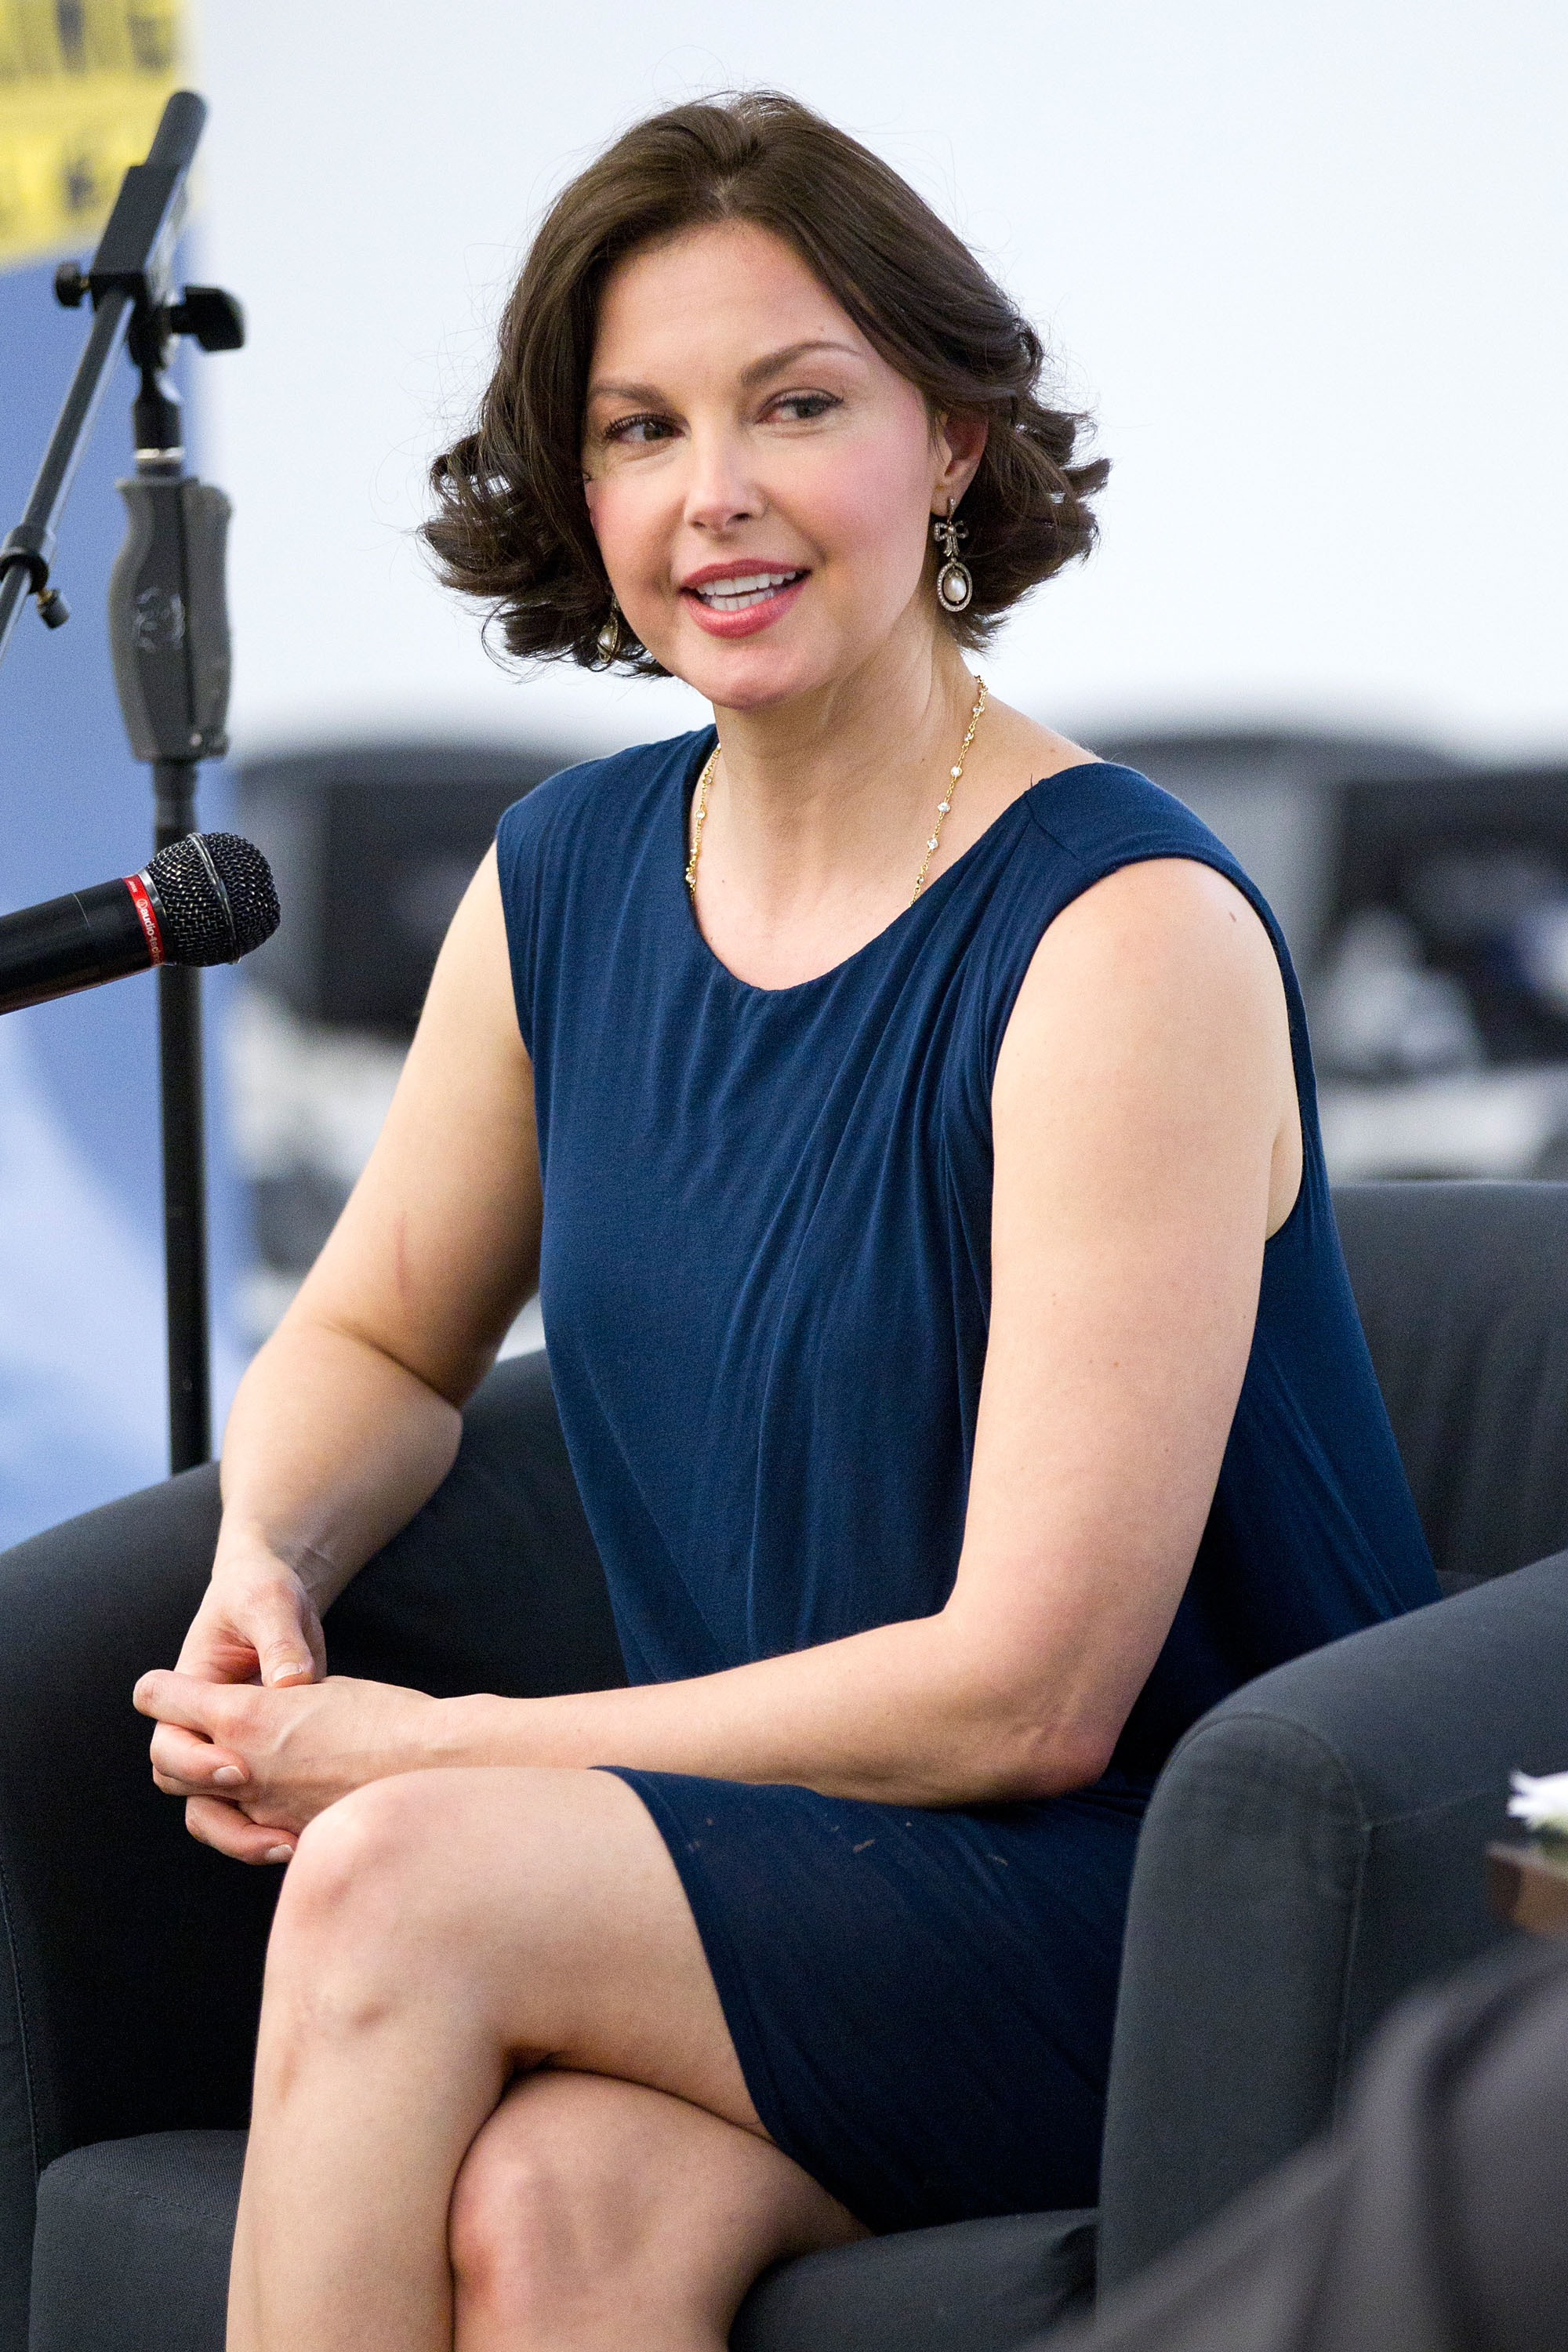 1000+ images about Ashley Judd on Pinterest | Ashley judd